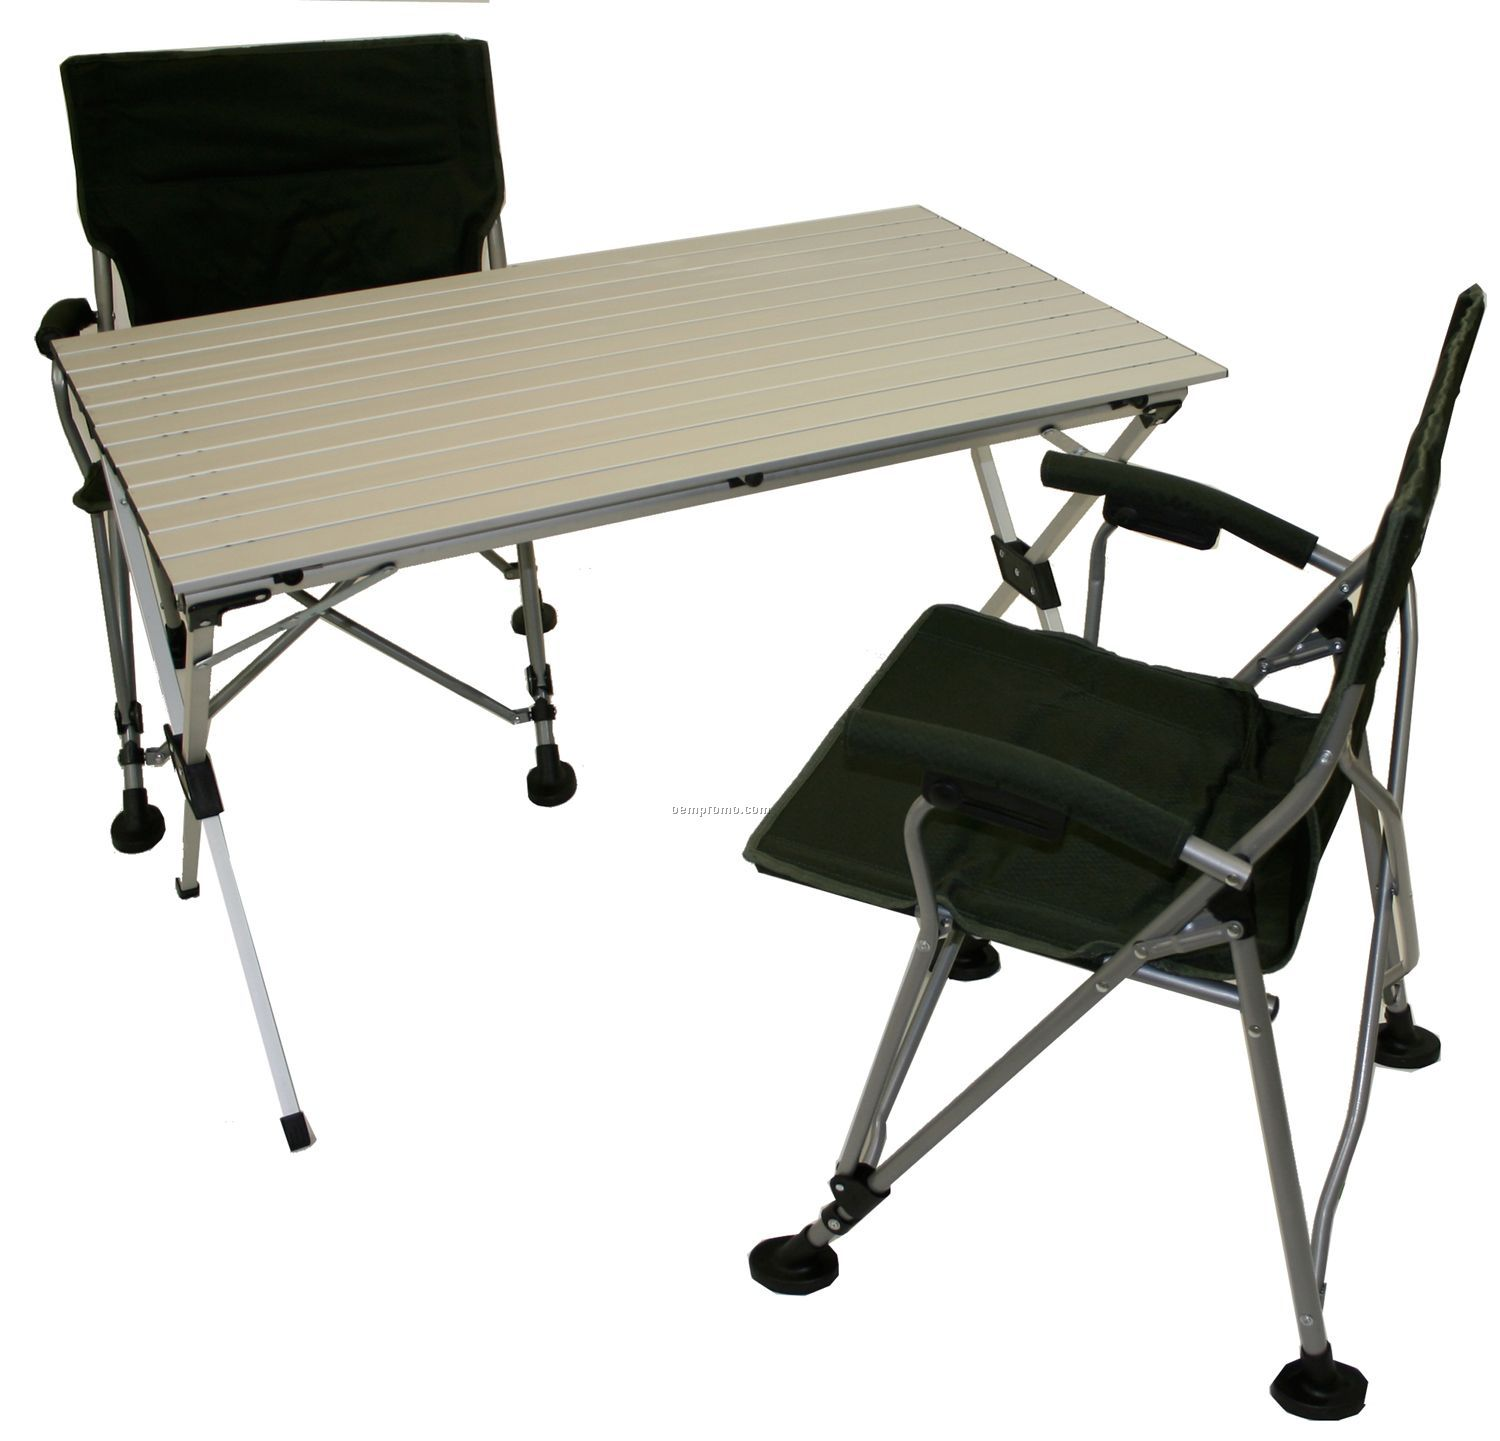 Tables china wholesale tables page 22 - Low portable picnic table in a bag ...